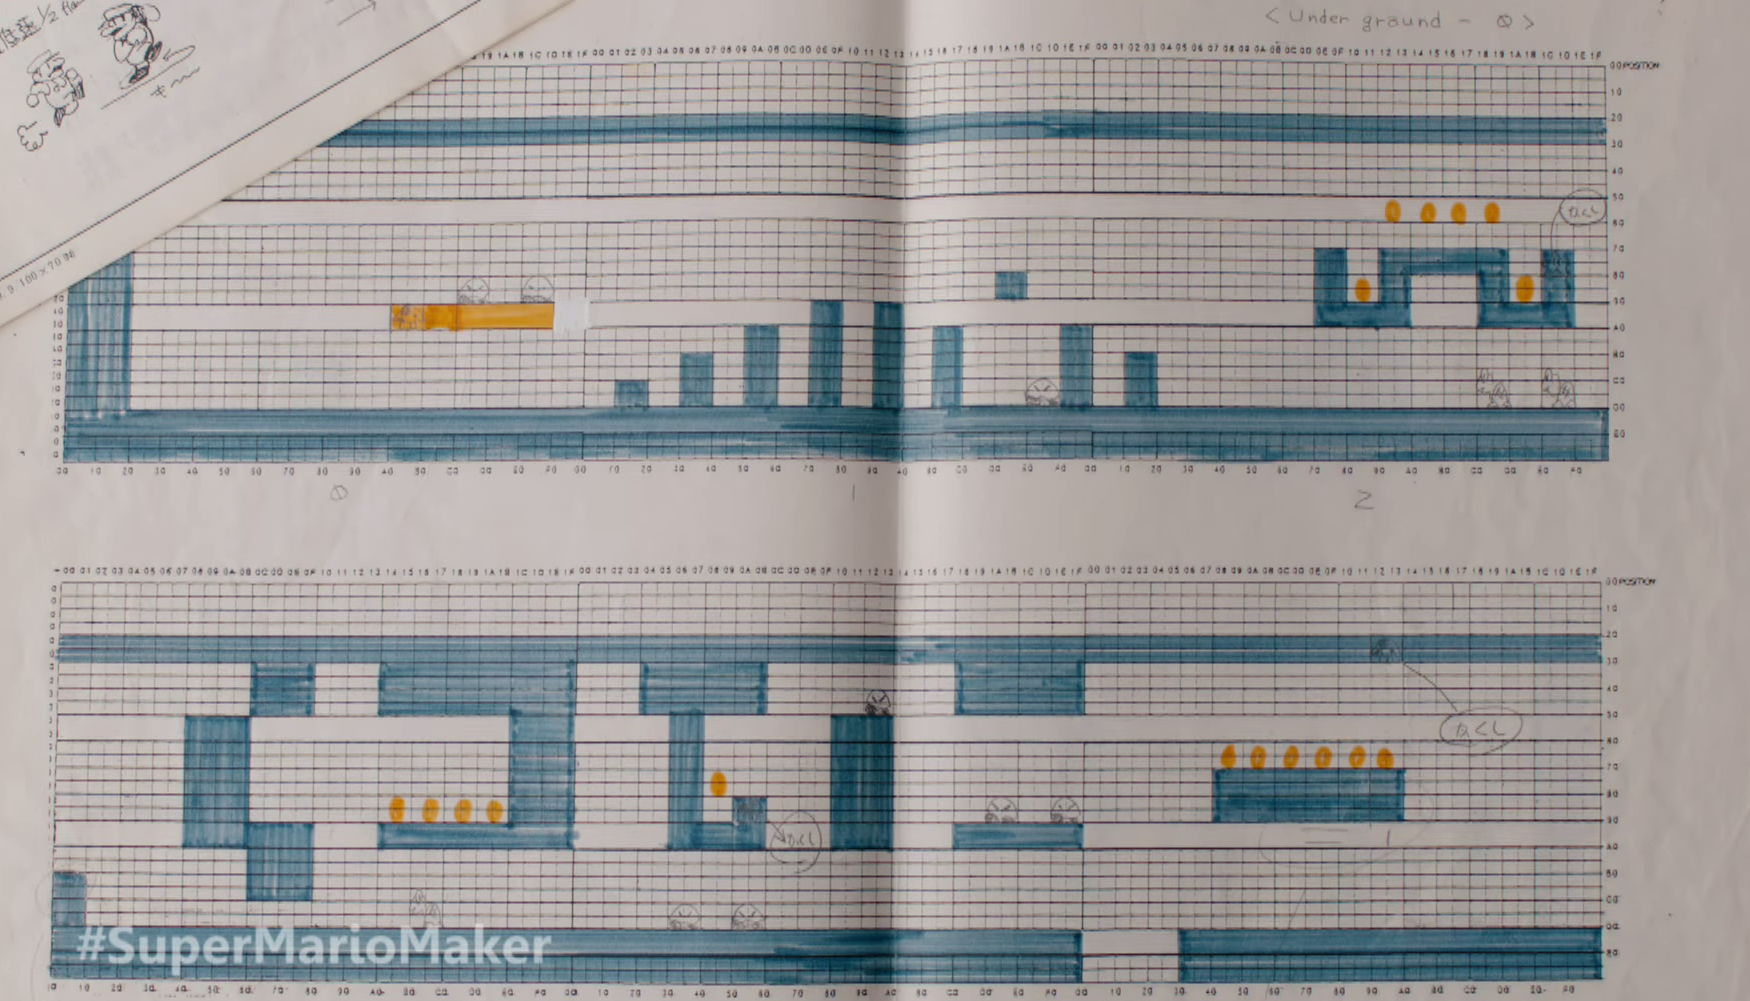 Early Mario levels were designed by hand using graph paper